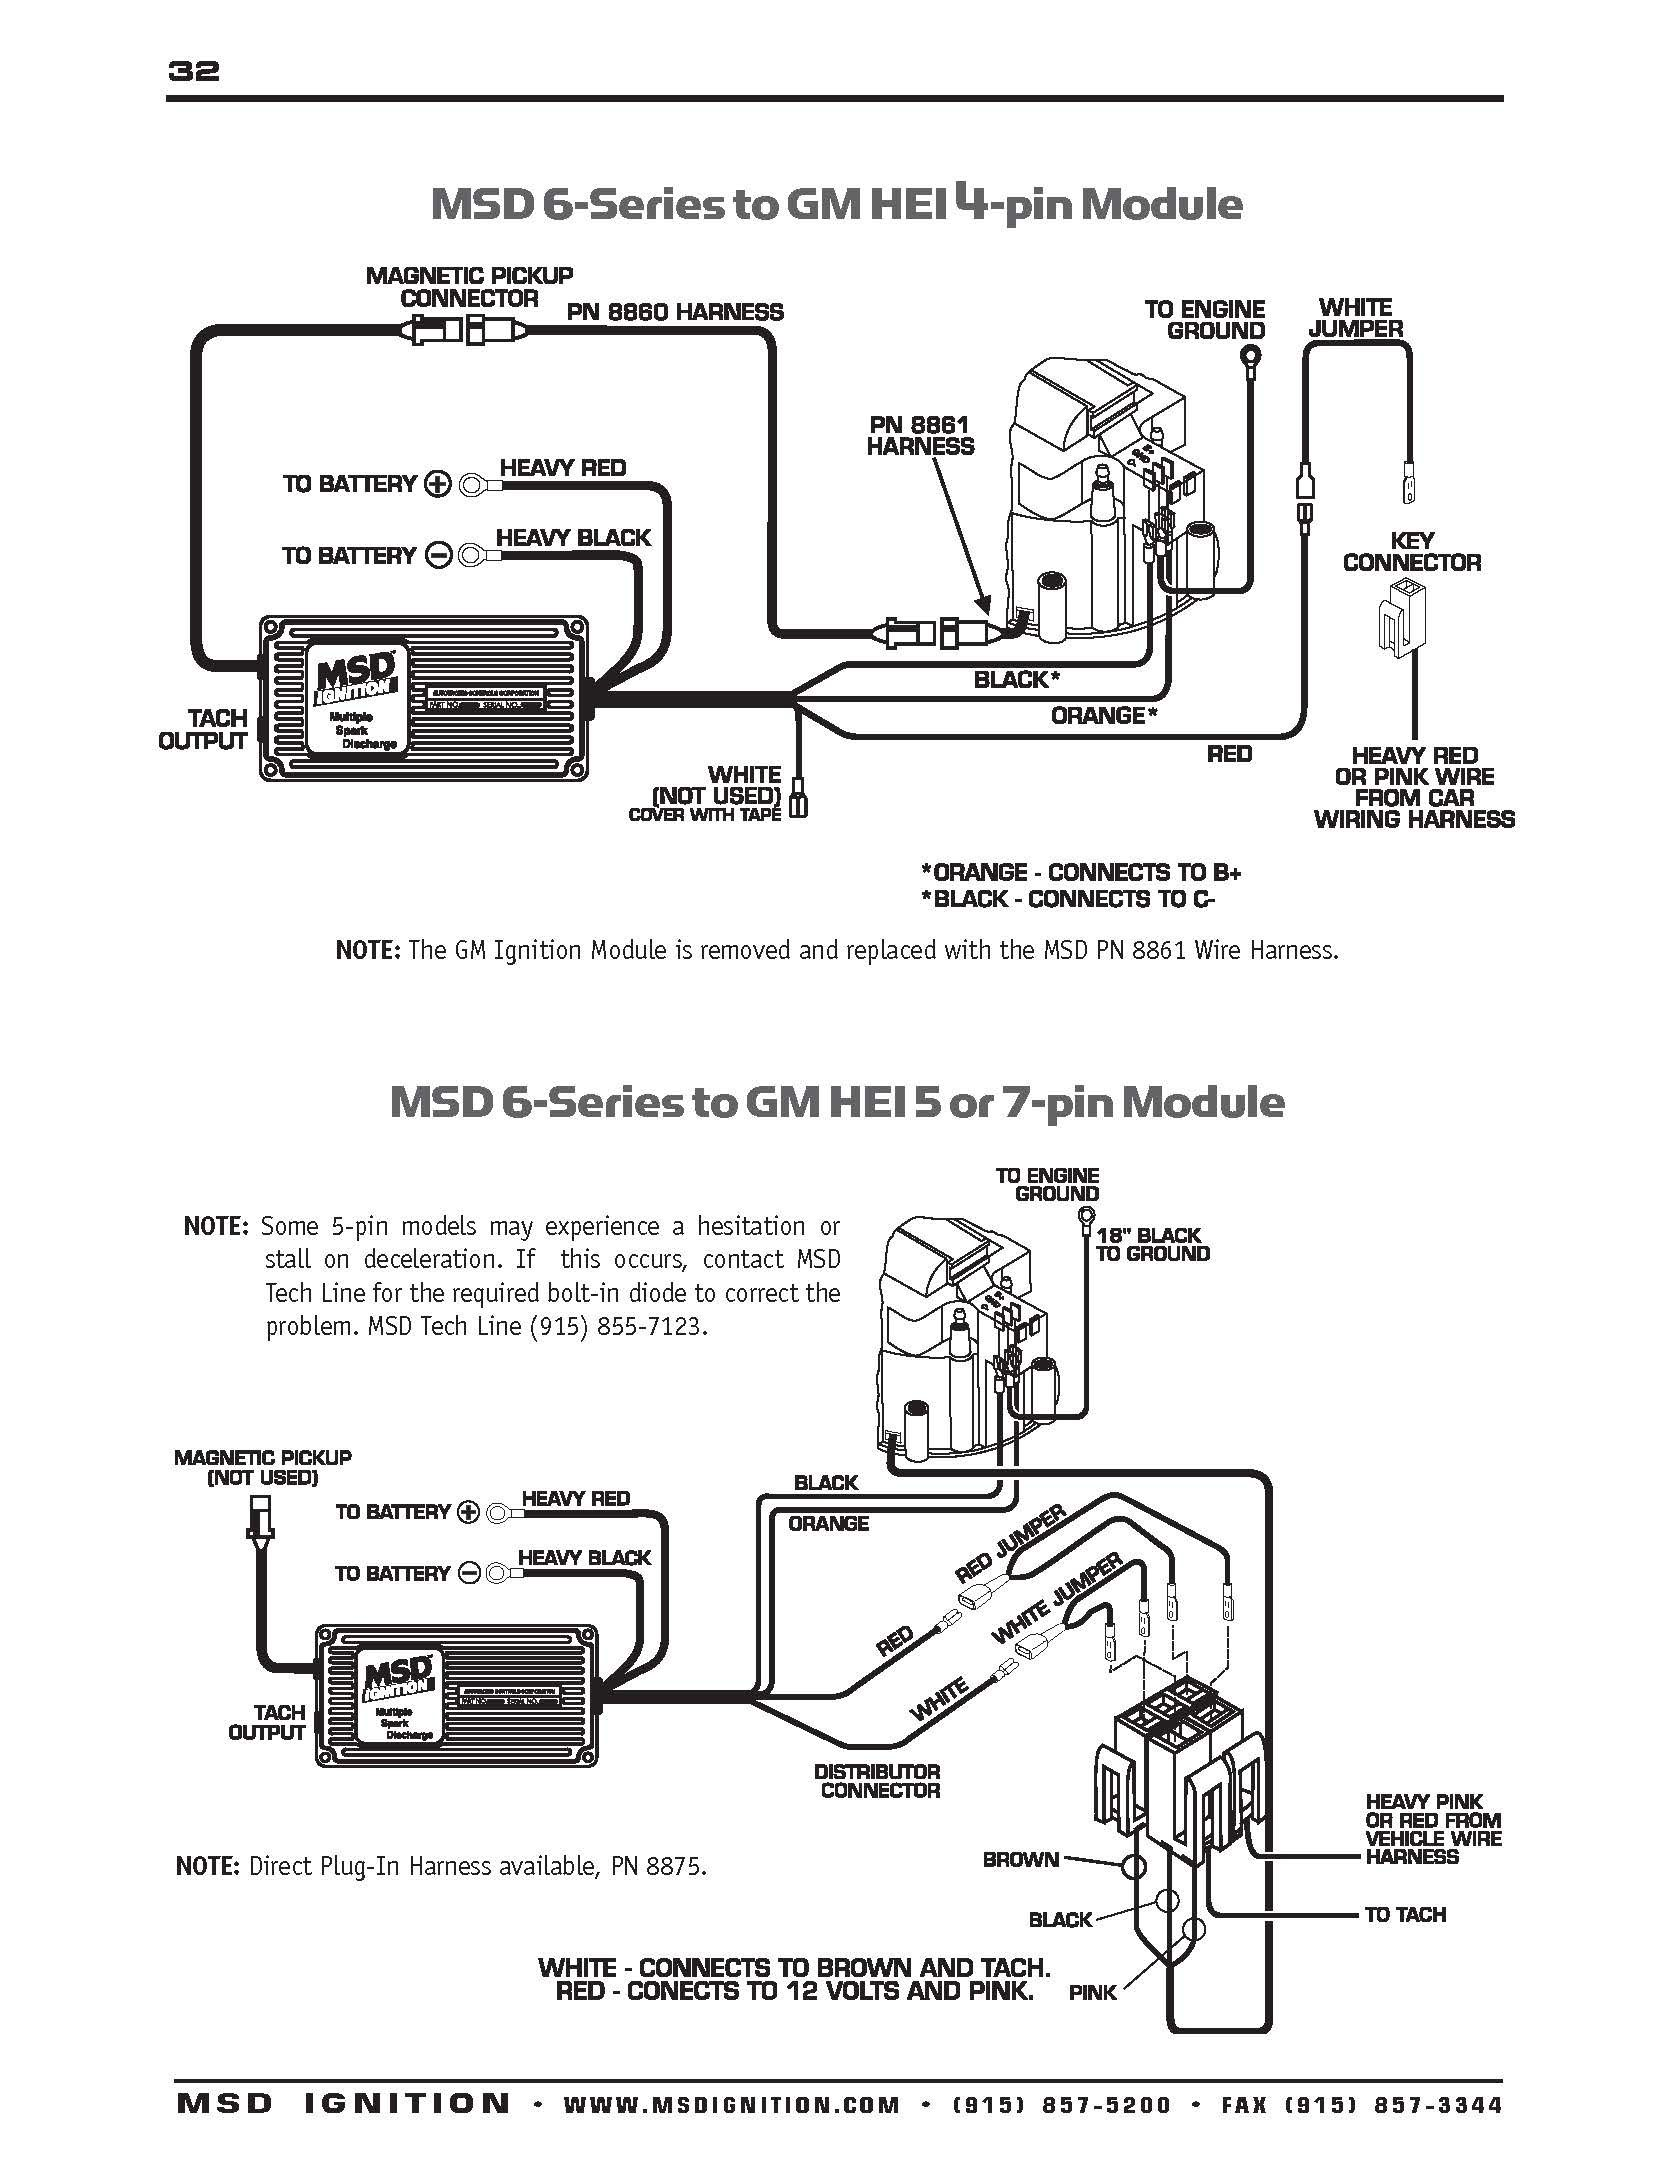 MSD Ignition Wiring Diagrams | 1966 Chevelle | Pinterest | Cars, Car on 66 chevelle dimensions, 66 chevelle rear suspension, 66 chevelle fuel gauge, 66 chevelle drag car, 66 chevelle motor, 66 chevelle chassis, 66 chevelle frame, 66 chevelle starter wiring, 66 chevelle cowl hood, 66 chevelle parts, 66 chevelle brake system, 66 chevelle brochure, 66 chevelle neutral safety switch, 66 chevelle exhaust, 66 chevelle heater, 66 chevelle headlights, 66 chevelle vinyl top, 66 chevelle dash removal, 66 chevelle door, 66 chevelle assembly manual,